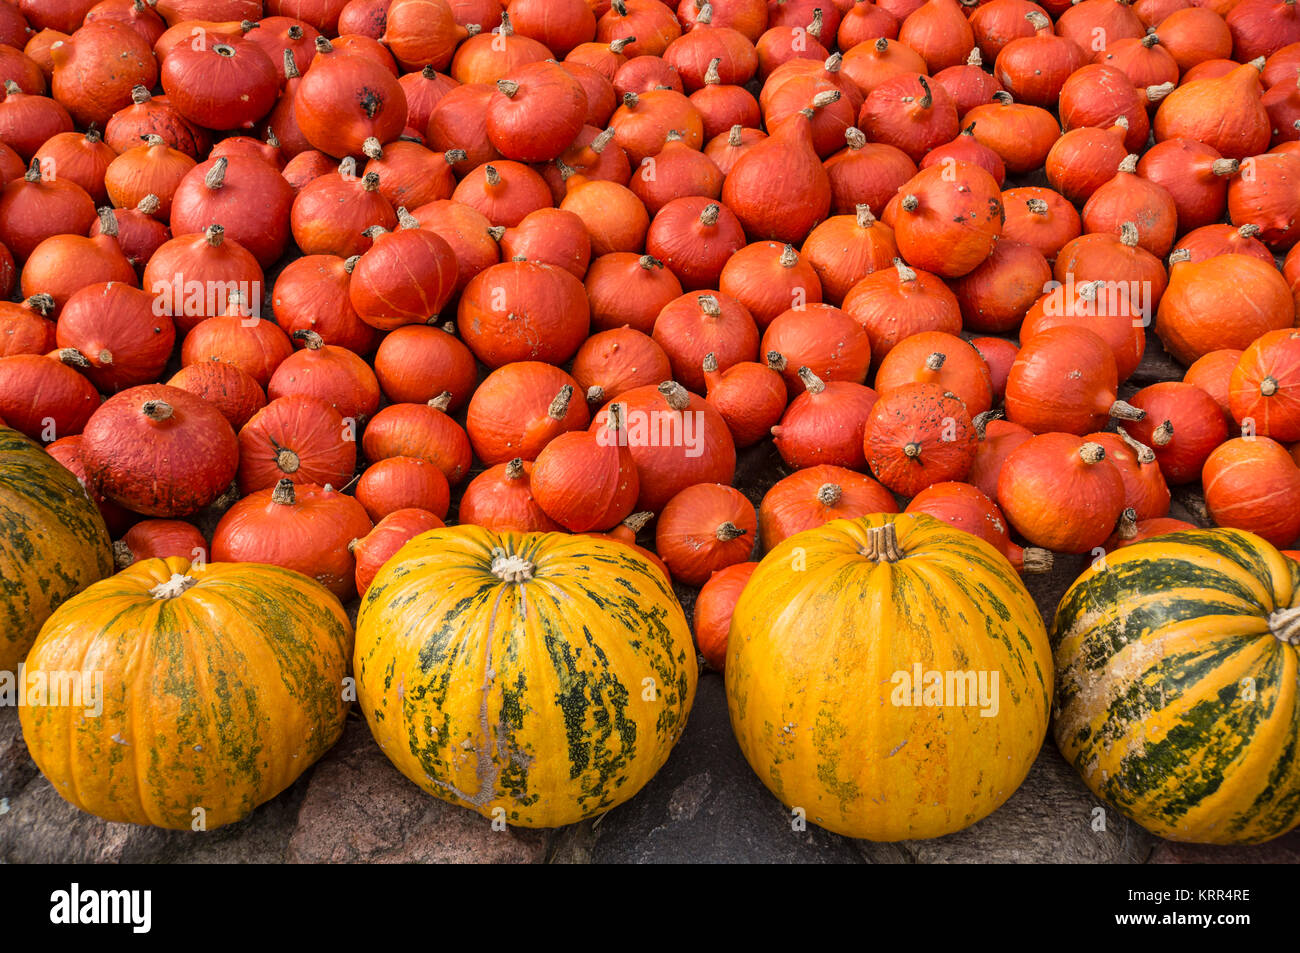 Pumkins, Autumn, Klaistow, Brandenburg, Germany - Stock Image